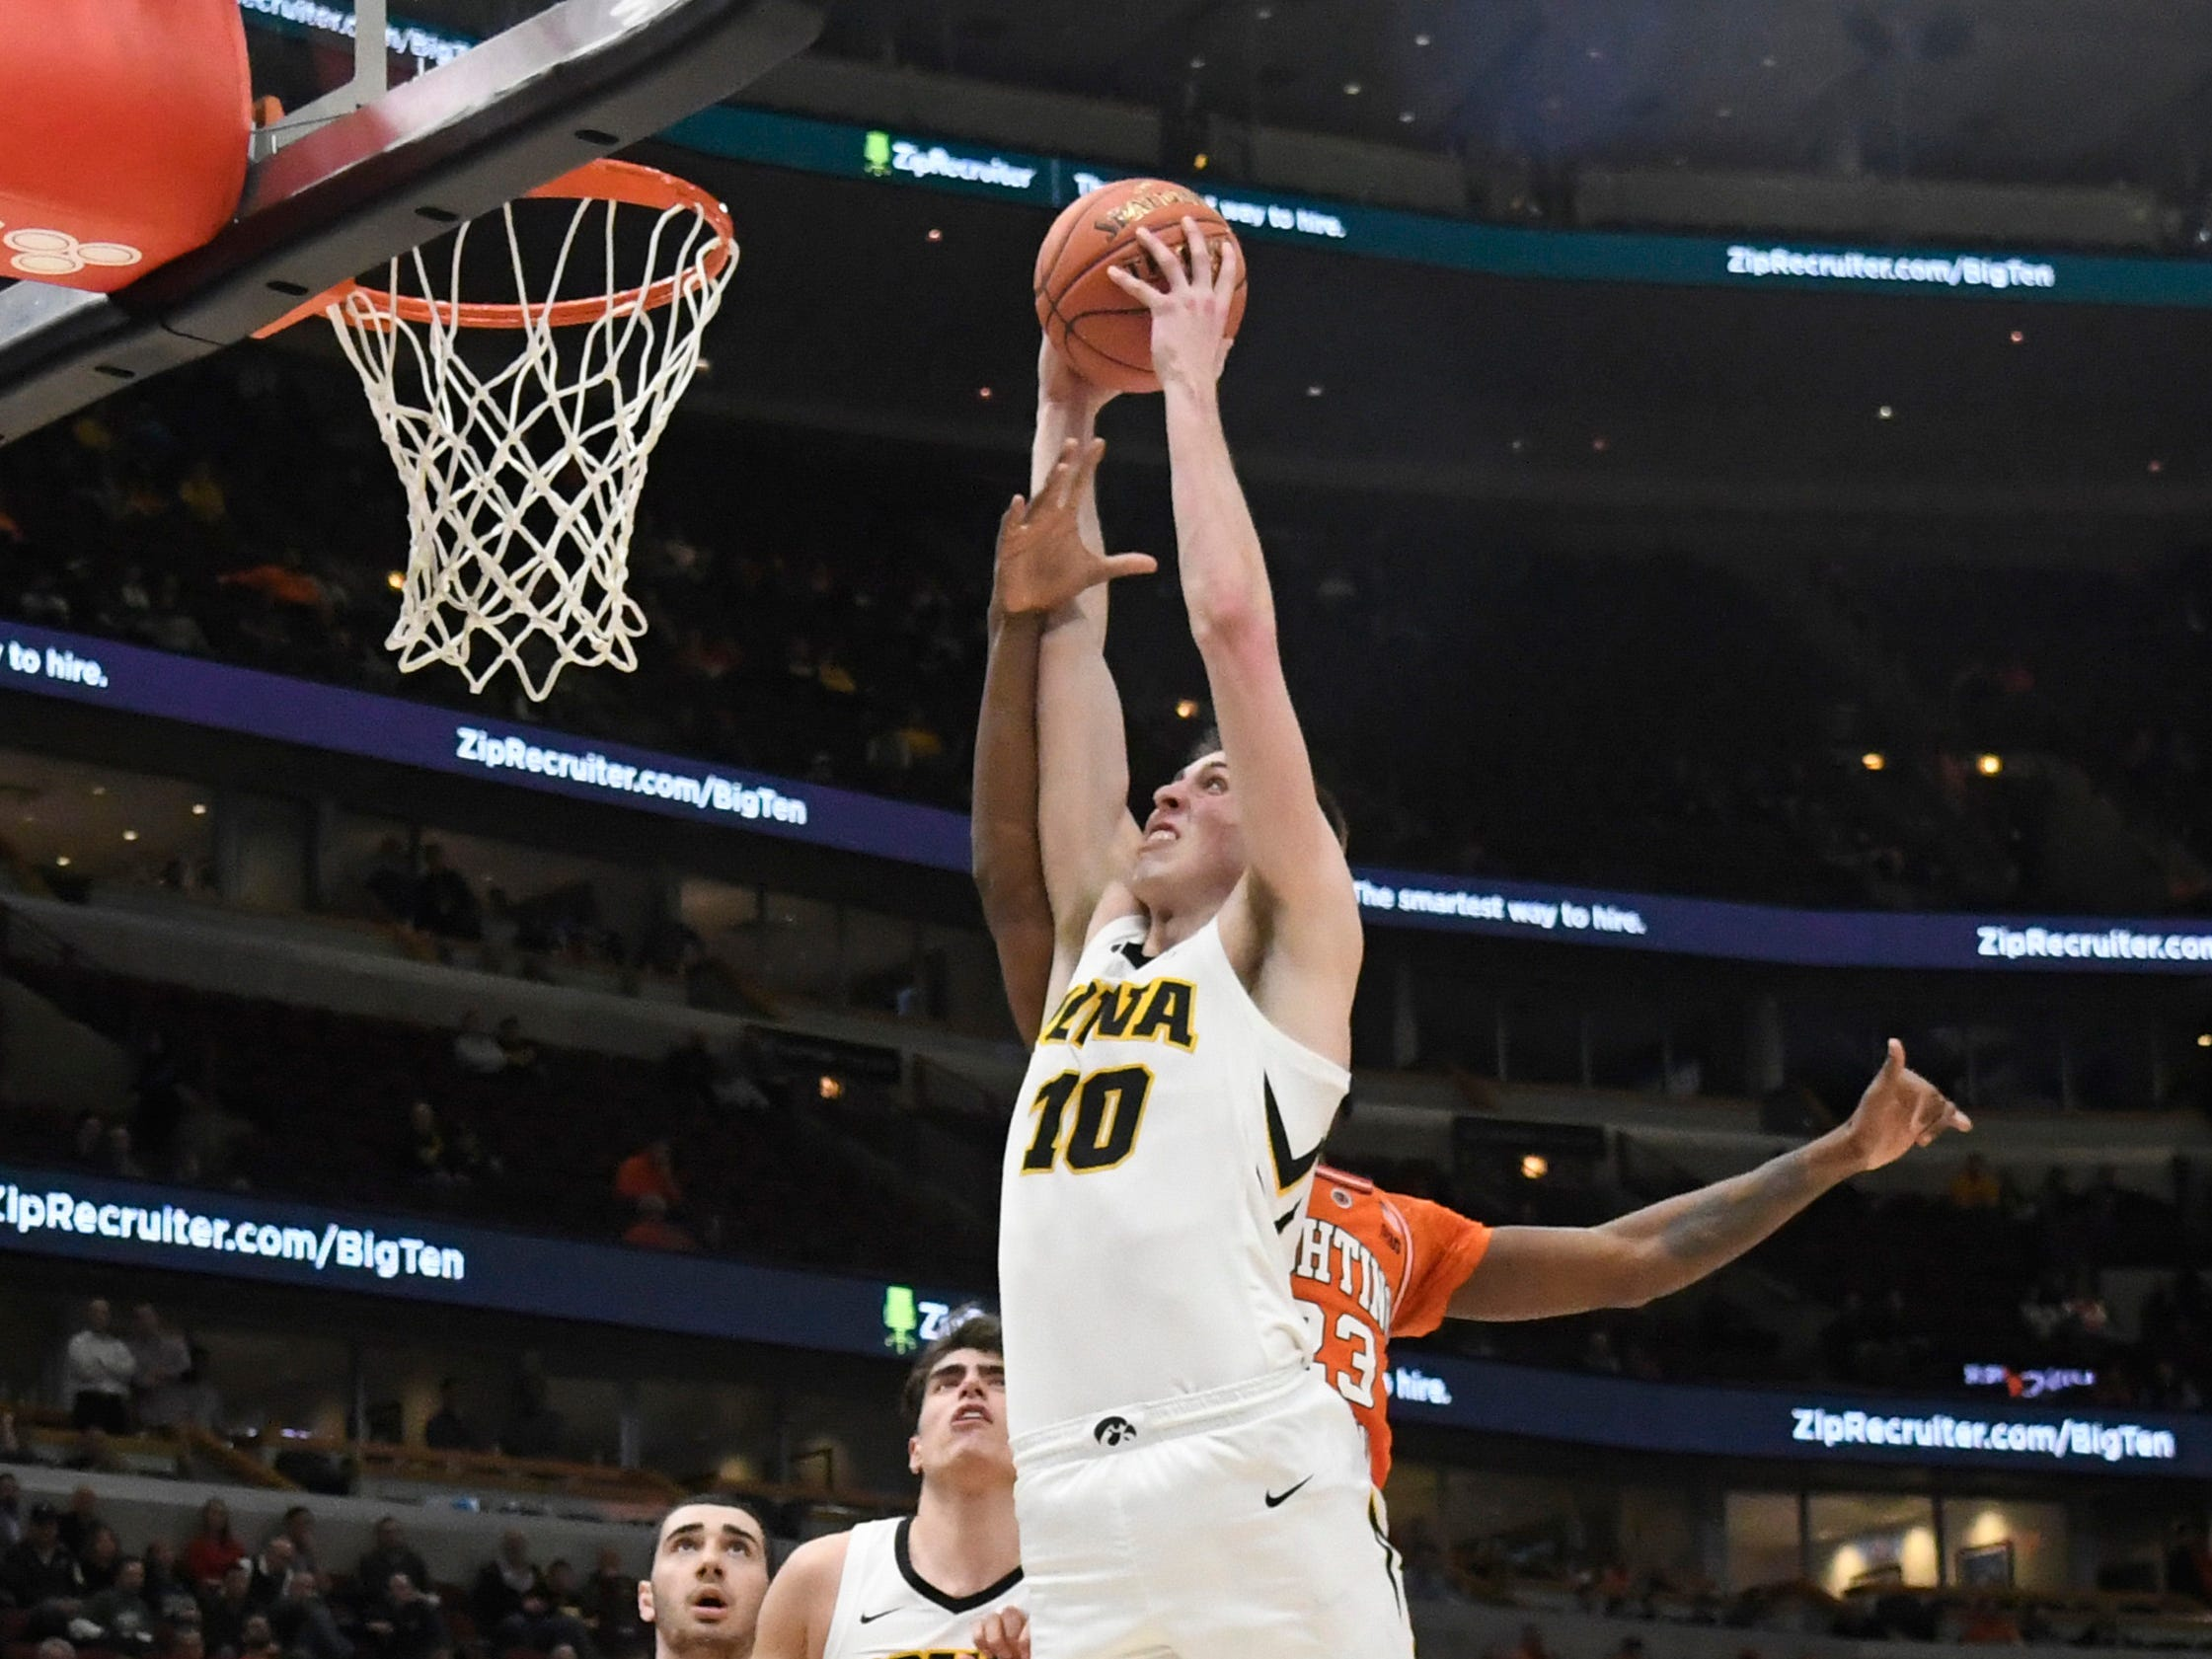 Mar 14, 2019; Chicago, IL, USA; Iowa Hawkeyes guard Joe Wieskamp (10) goes up for a dunk against the Illinois Fighting Illini during the second half in the Big Ten conference tournament at United Center. Mandatory Credit: David Banks-USA TODAY Sports